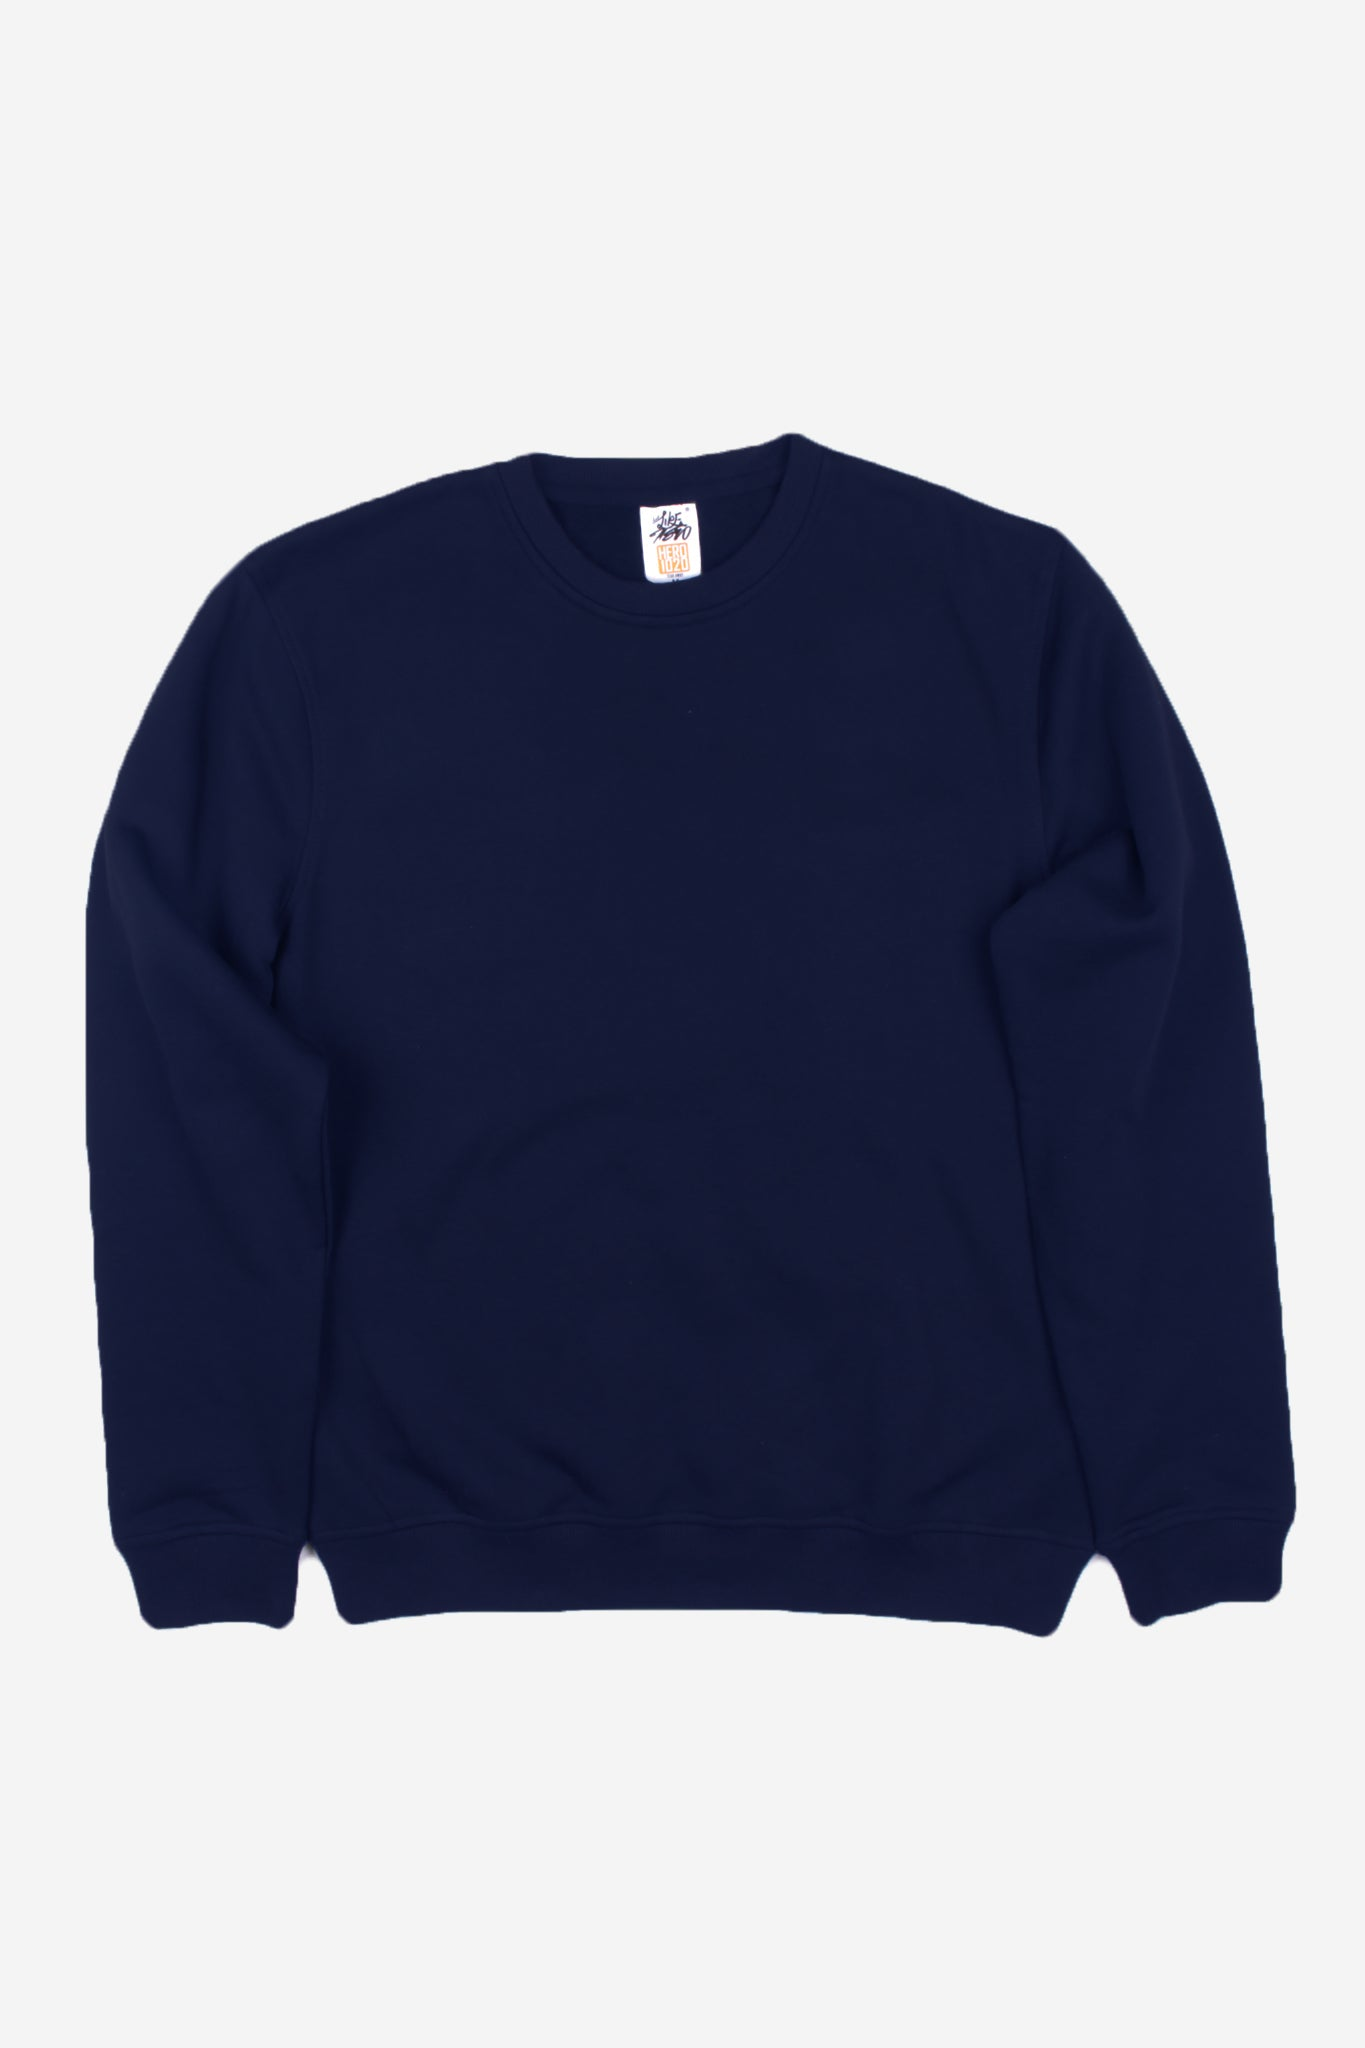 HERO-1020 Unisex Youth Blank Crewneck Sweatshirt - Navy Blue